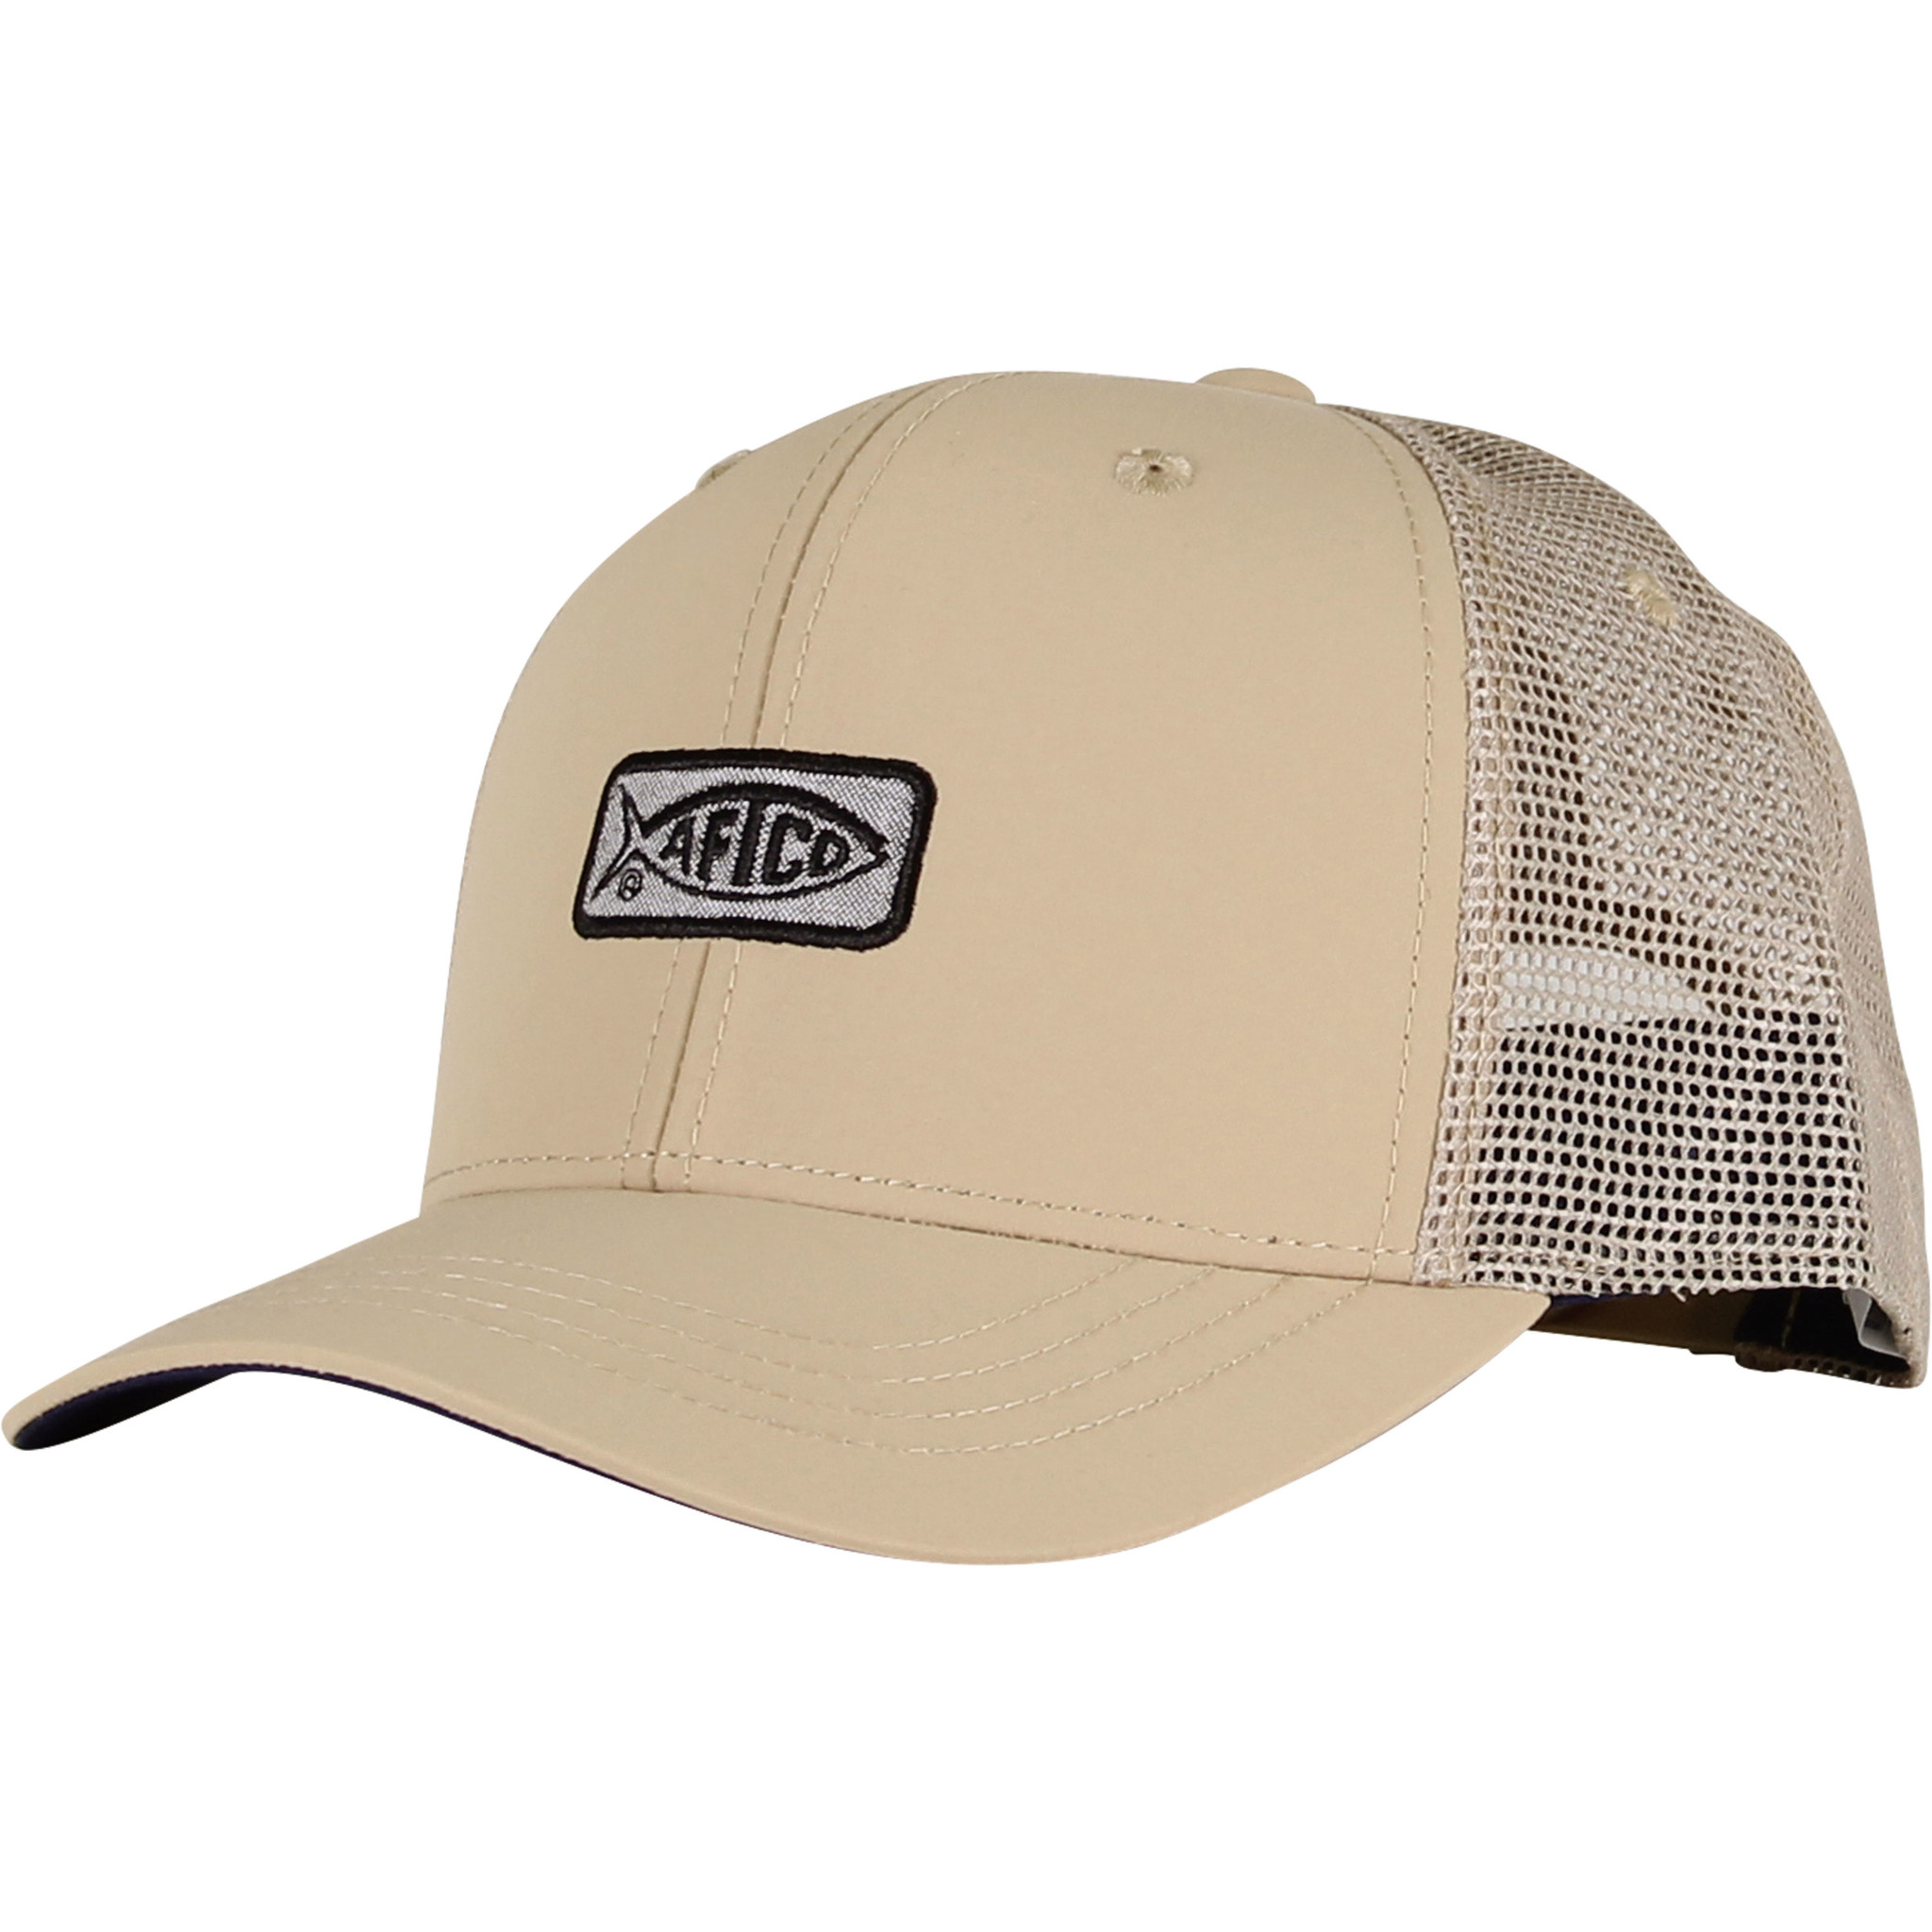 AFTCO AFTCO Original Fishing Trucker Hat